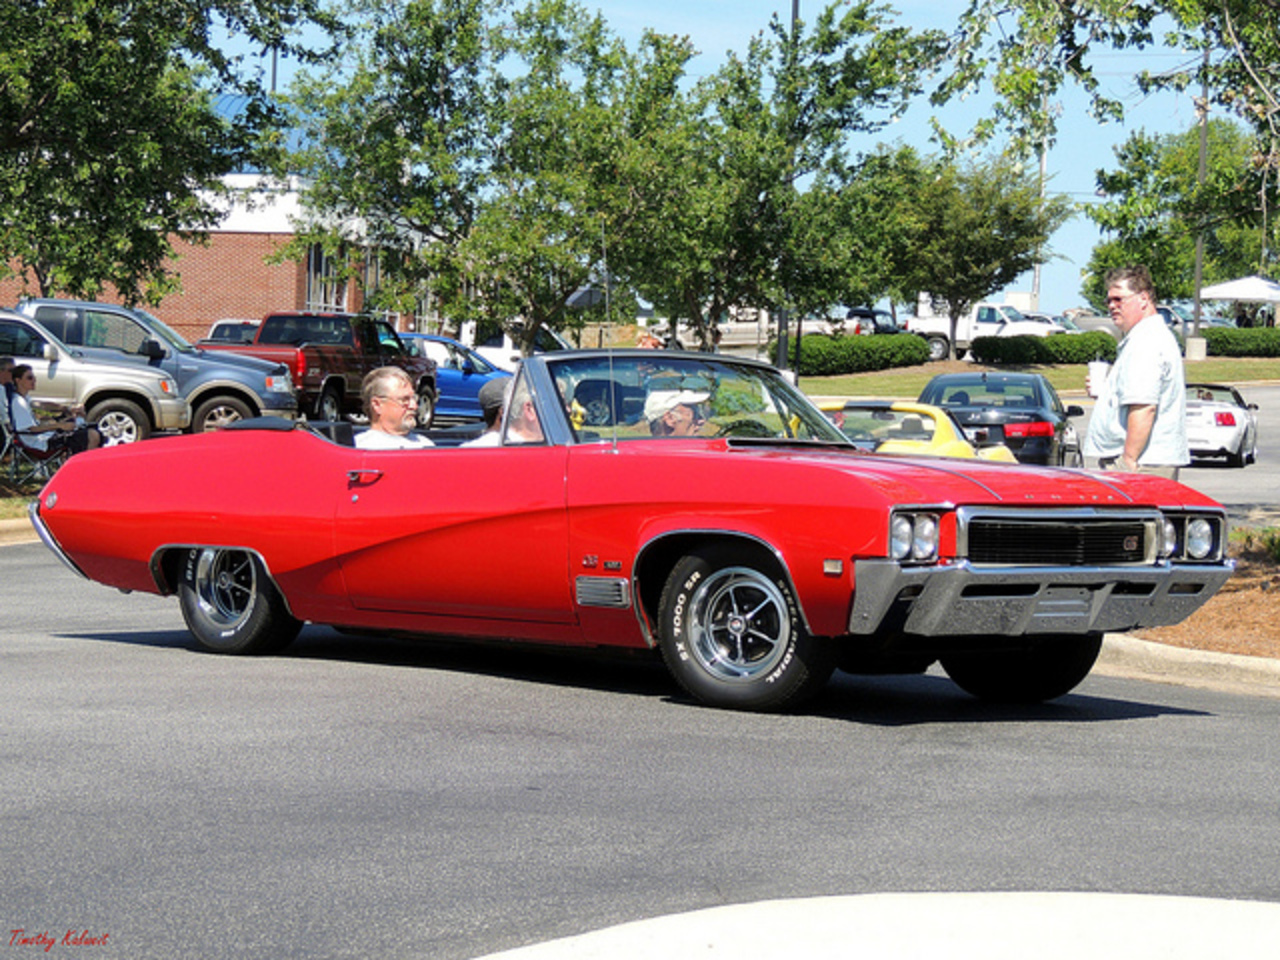 Buick Skylark GS 400 Convertable. Seen at the June 16th 2012 Garner NC Grill